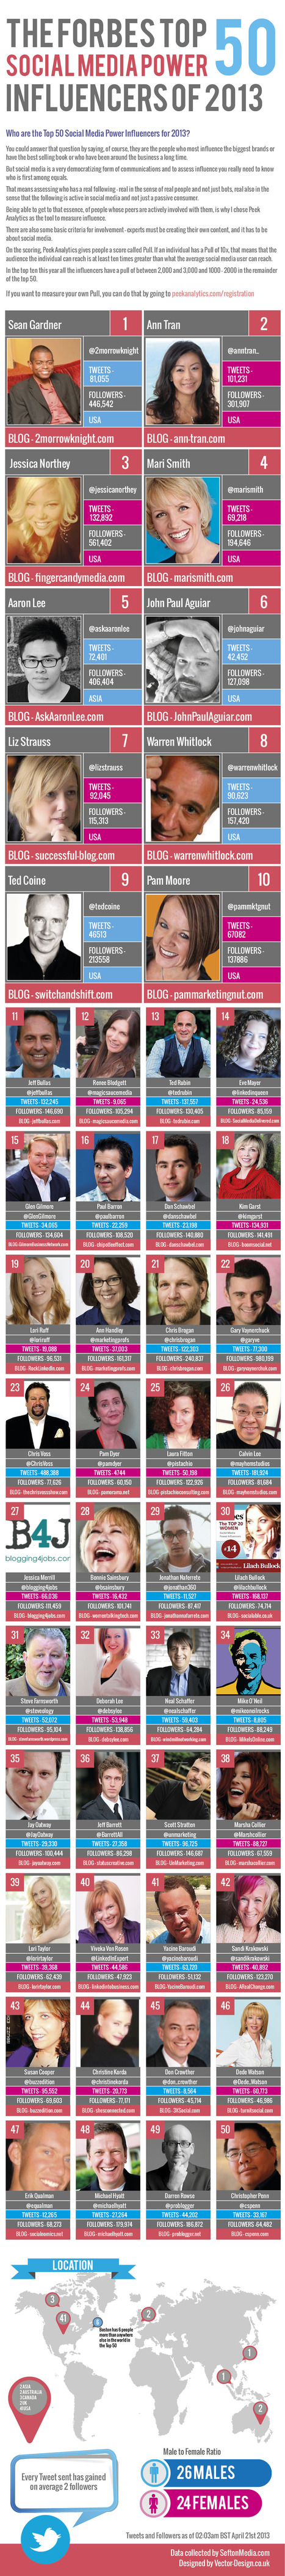 Forbes Top 50 Social Media Power Influencers of 2013 [INFOGRAPHIC] | Integrated Marketing Technologist | Scoop.it